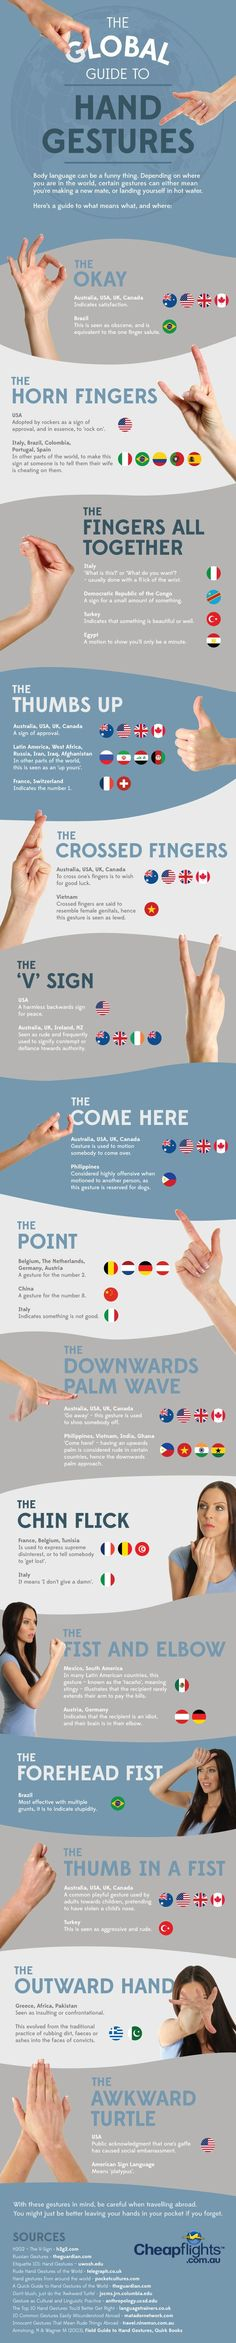 The Global Guide to Hand Gestures  #HandGestures #Travel (#infographic)